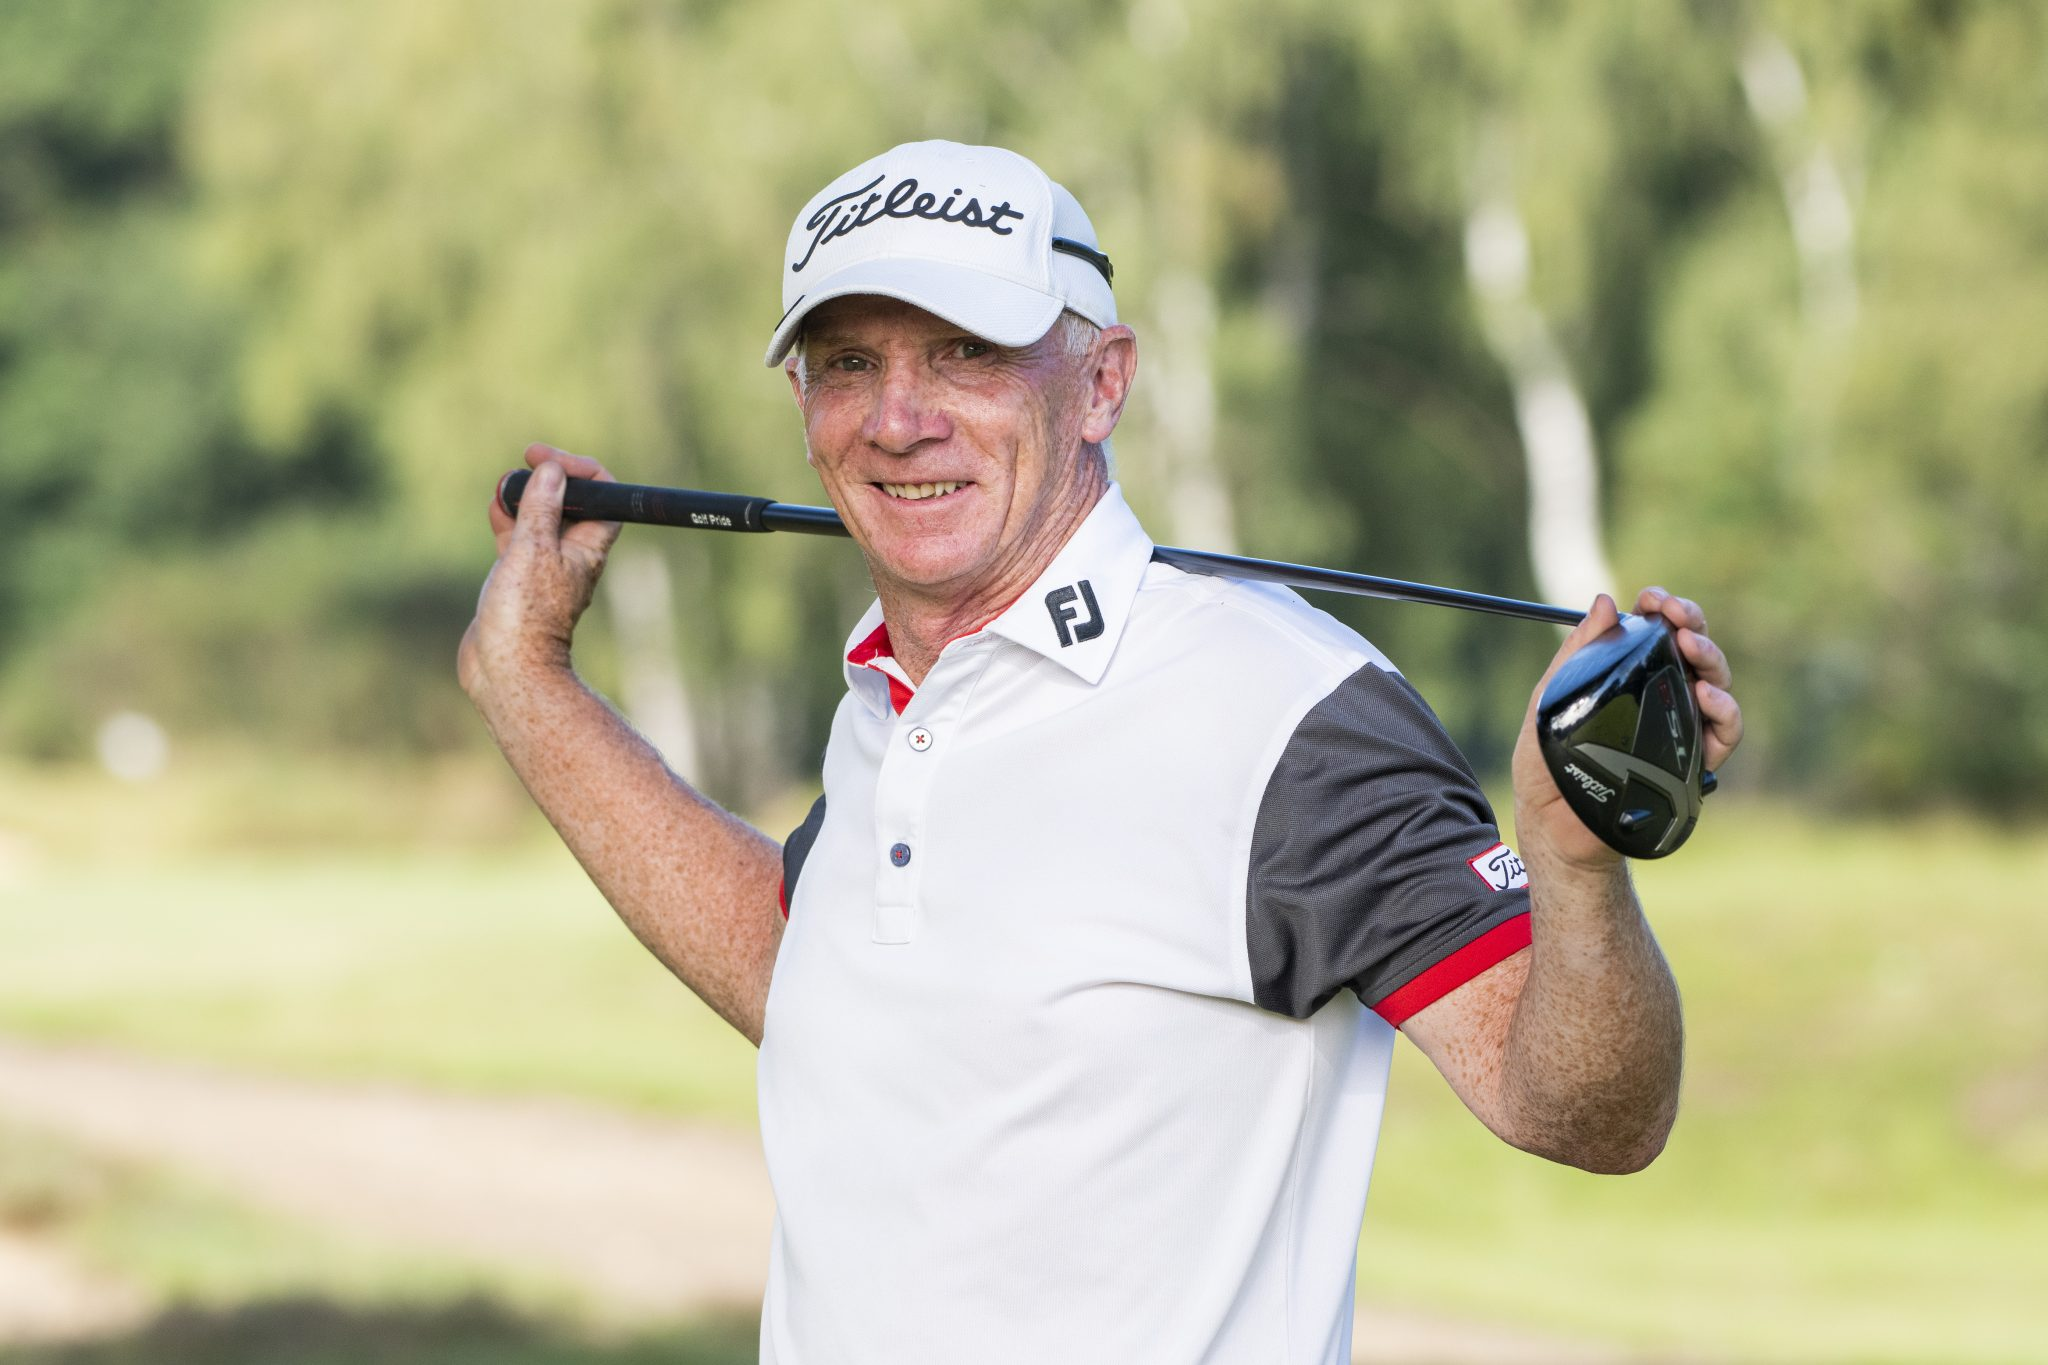 Woodhall Spa's Paul Wharton reached the last eight in the 2020 English Amateur Championship at Woodhall Spa, the home of England Golf.